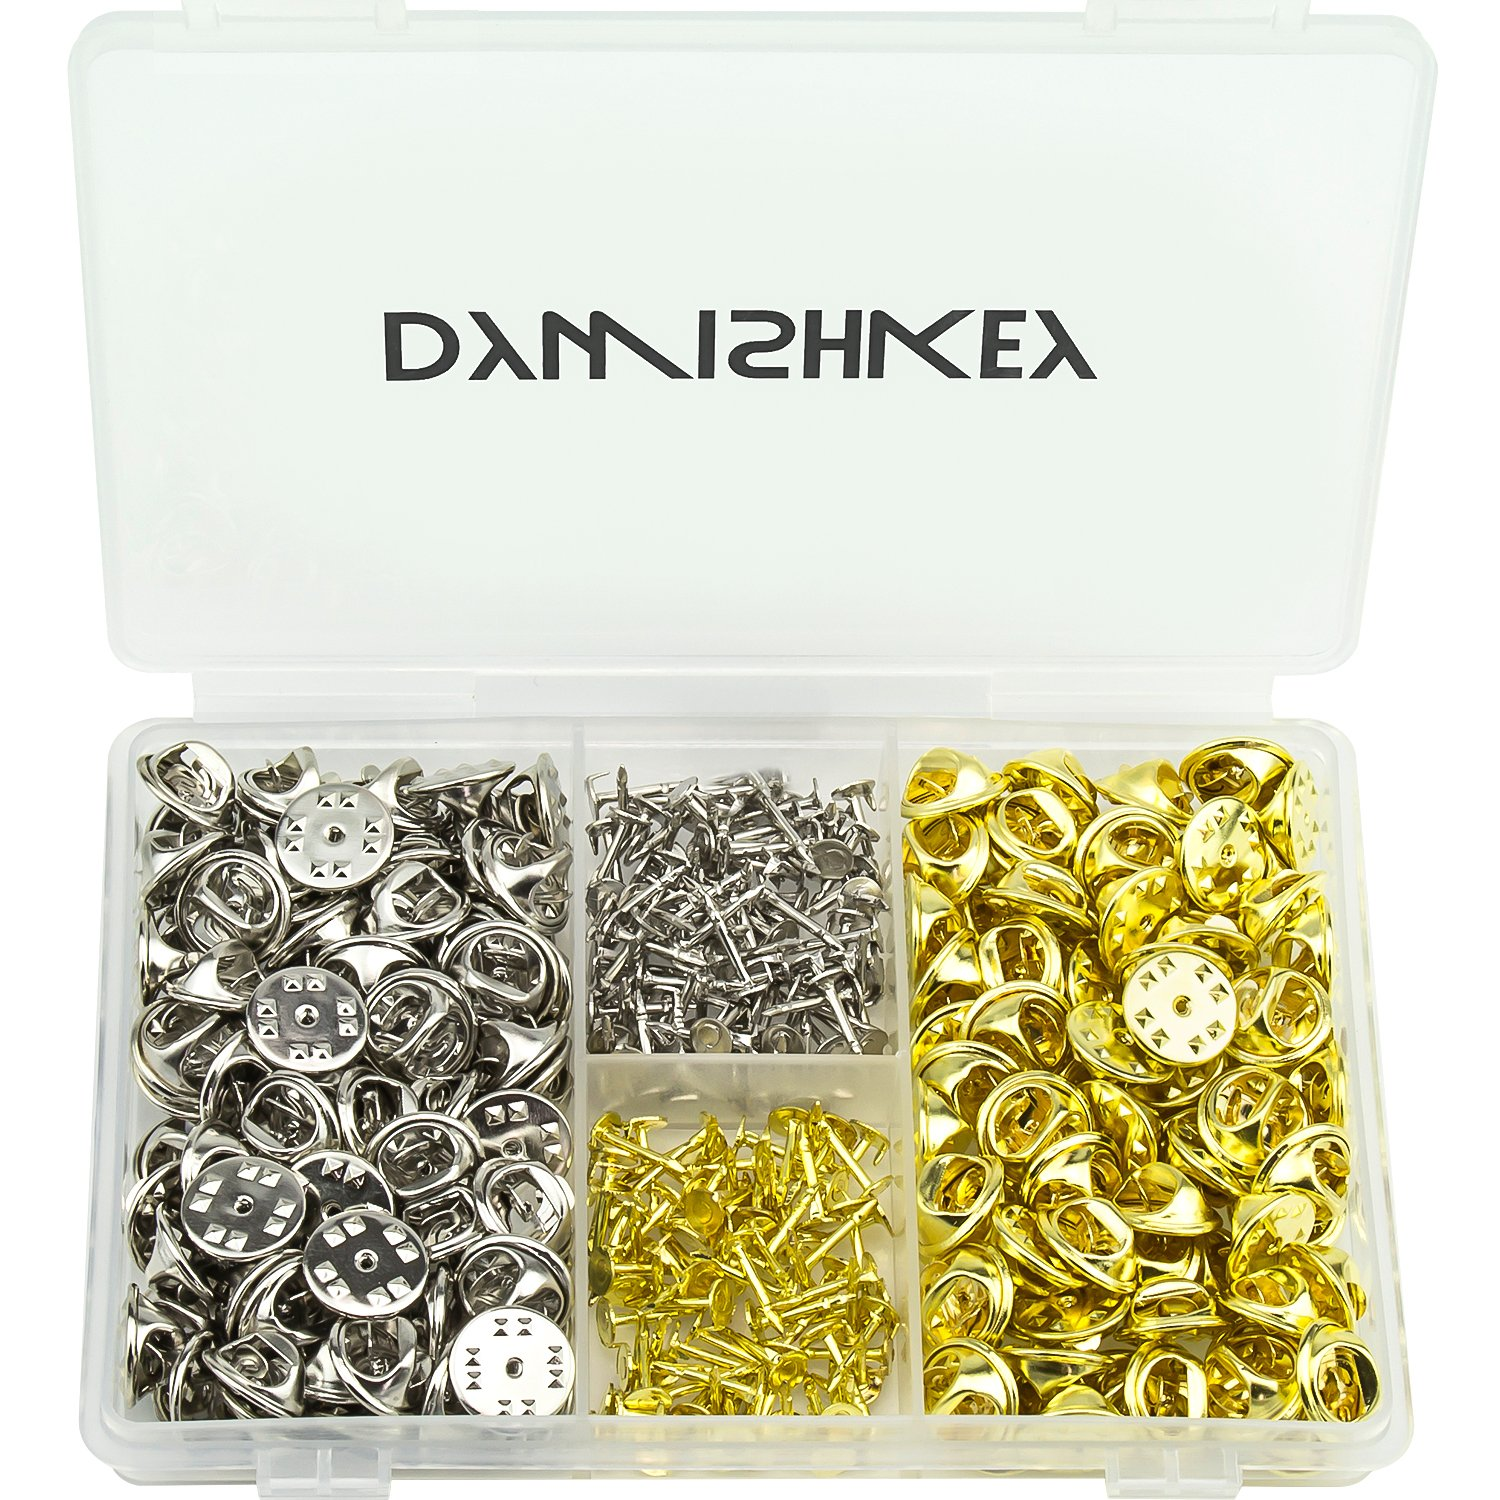 DYWISHKEY 320pcs Butterfly Clutch Metal Uniform Pin Badge Insignia Clutches Backs with Pins (Mix Color)